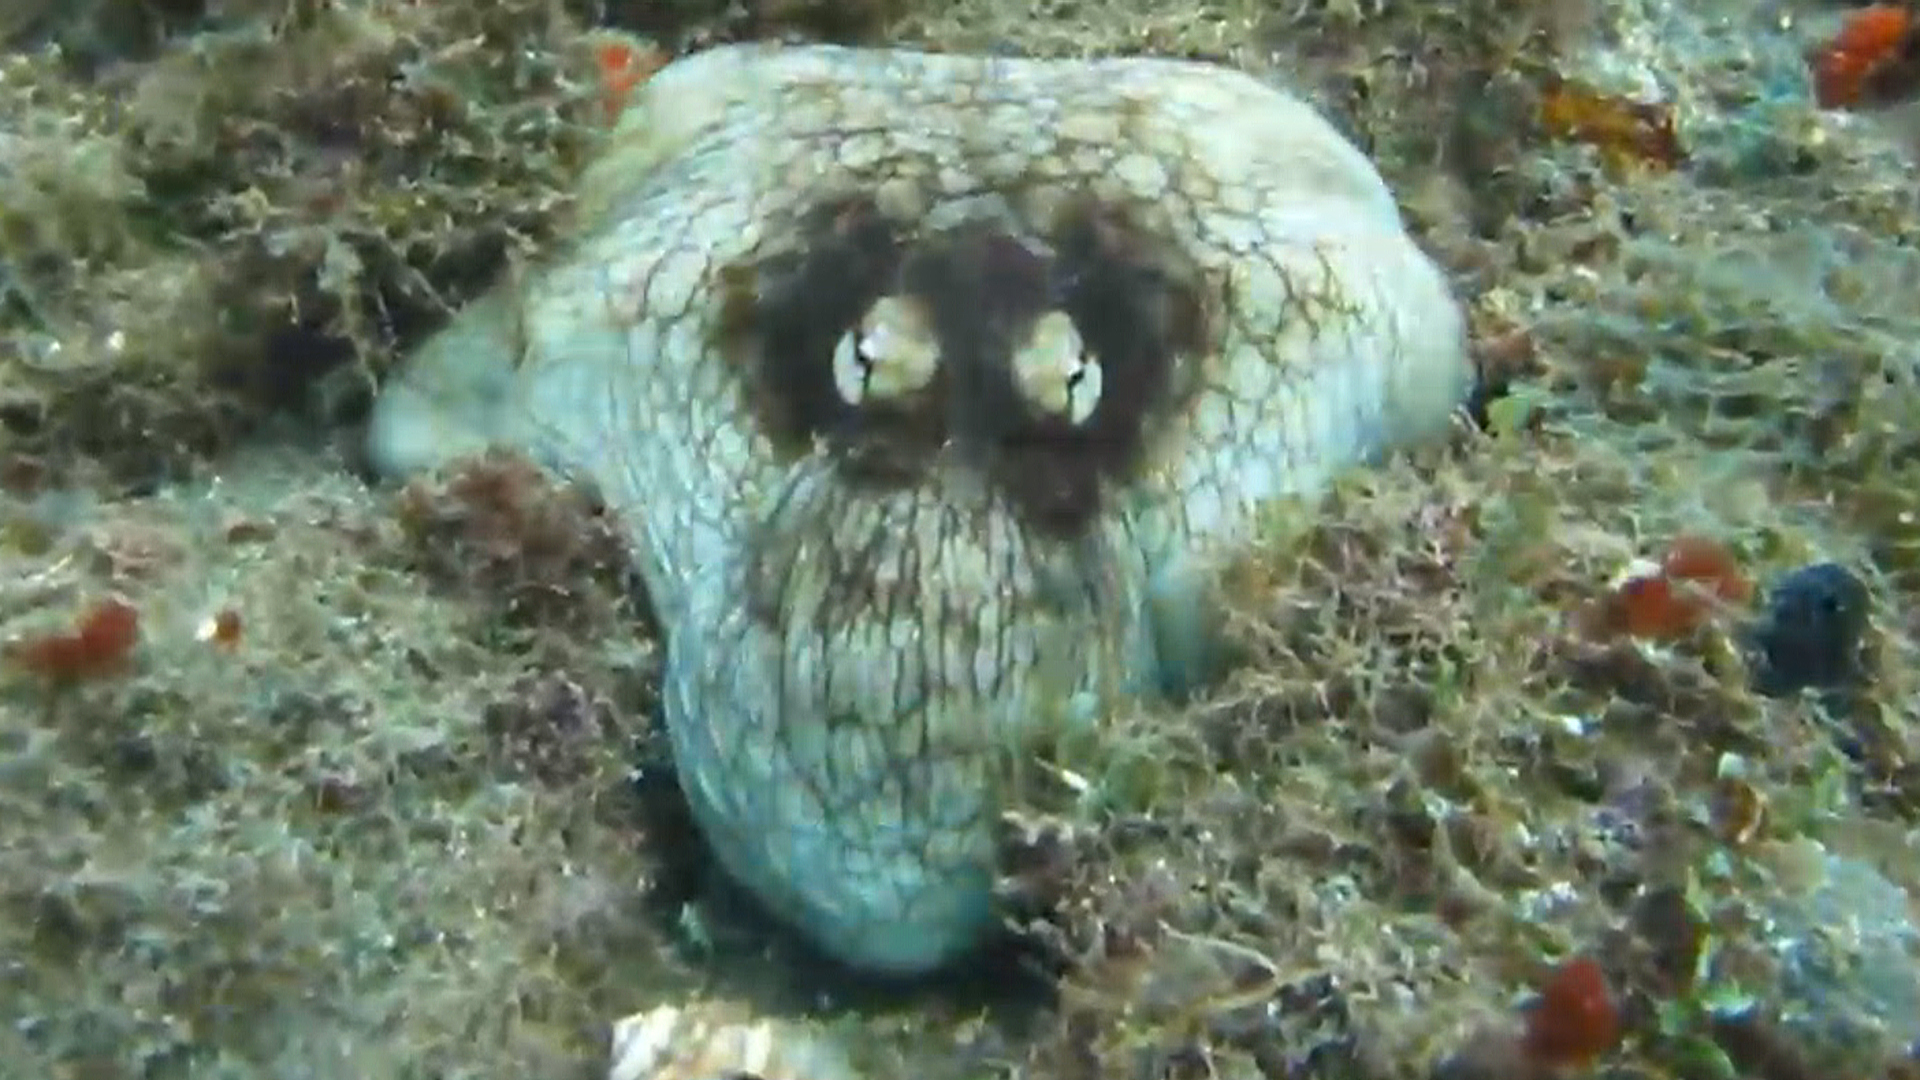 Why Does an Octopus Walk Funny? Scientists Are Amazed